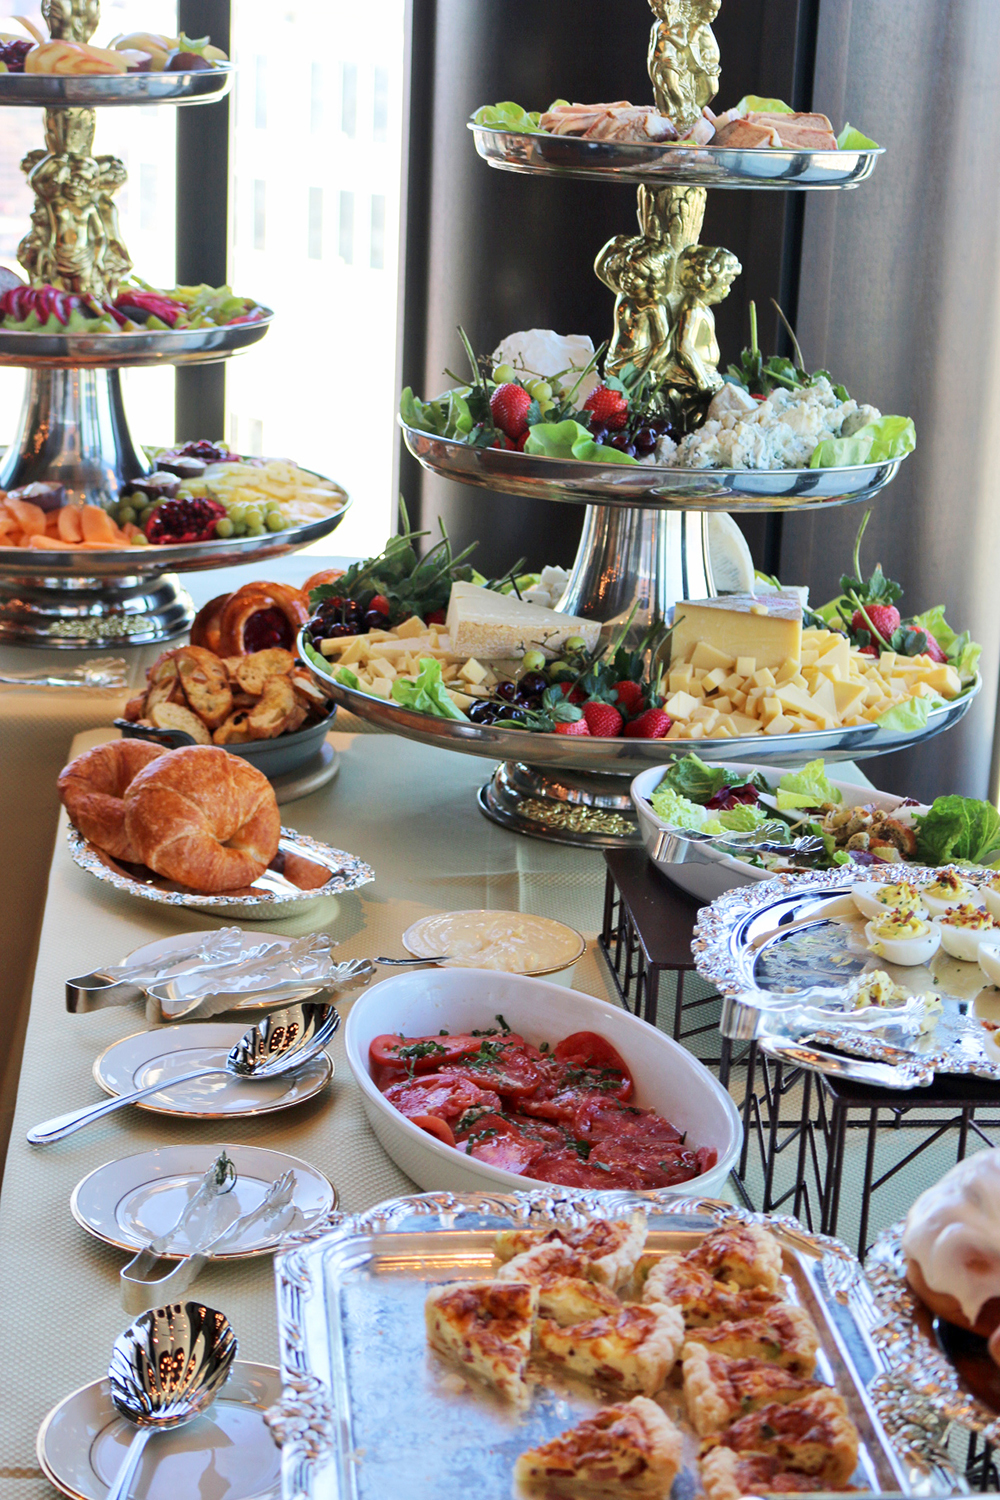 Brunch Buffet Baltimore S 30 Best Brunch Spots